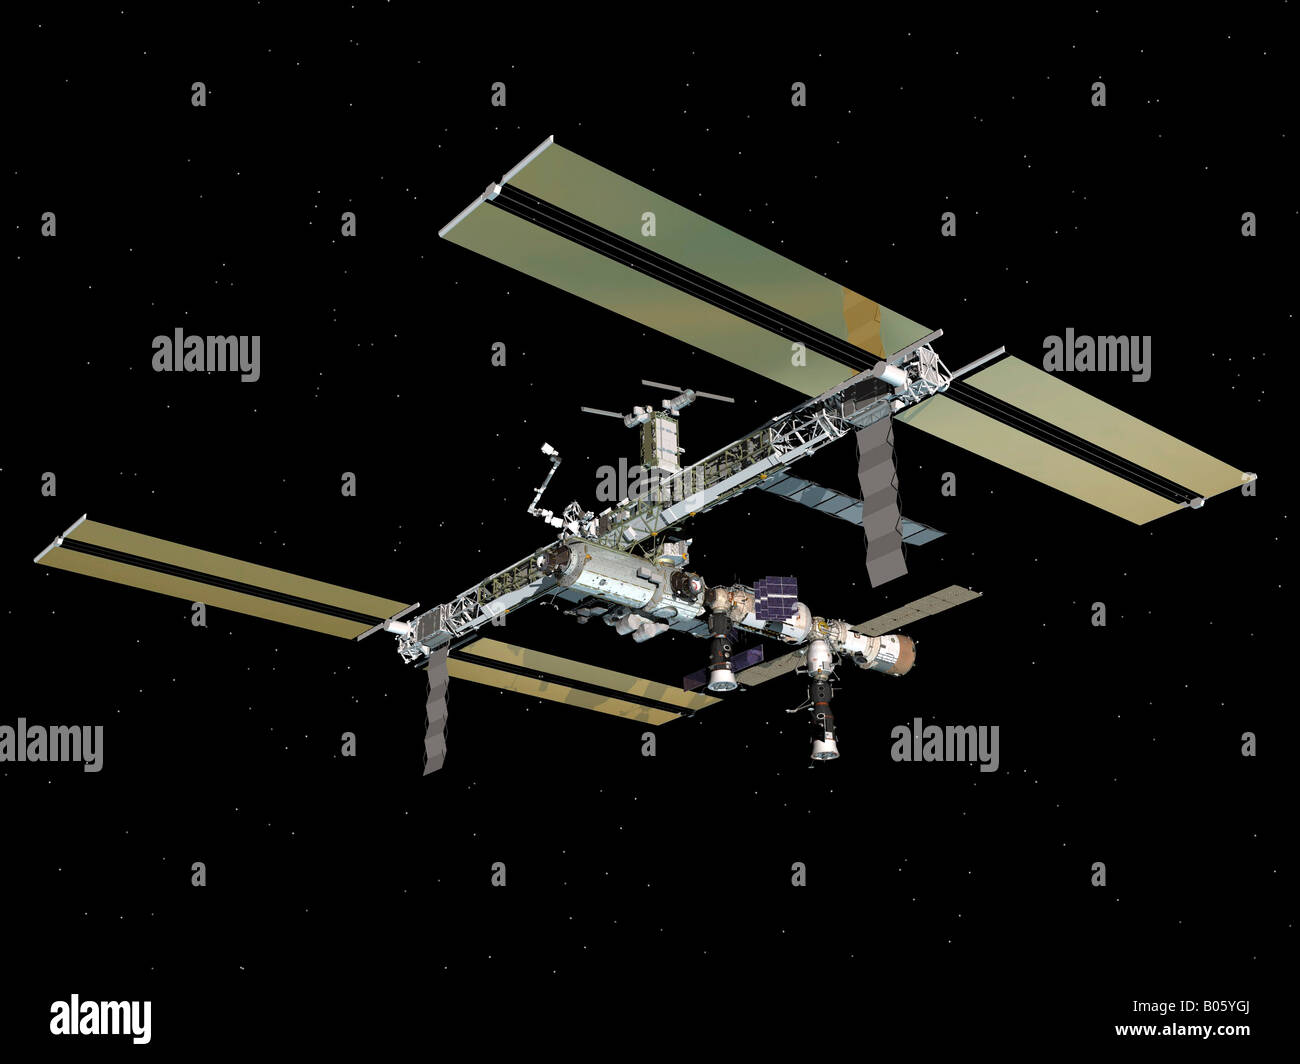 Computer generated view of the International Space Station. - Stock Image